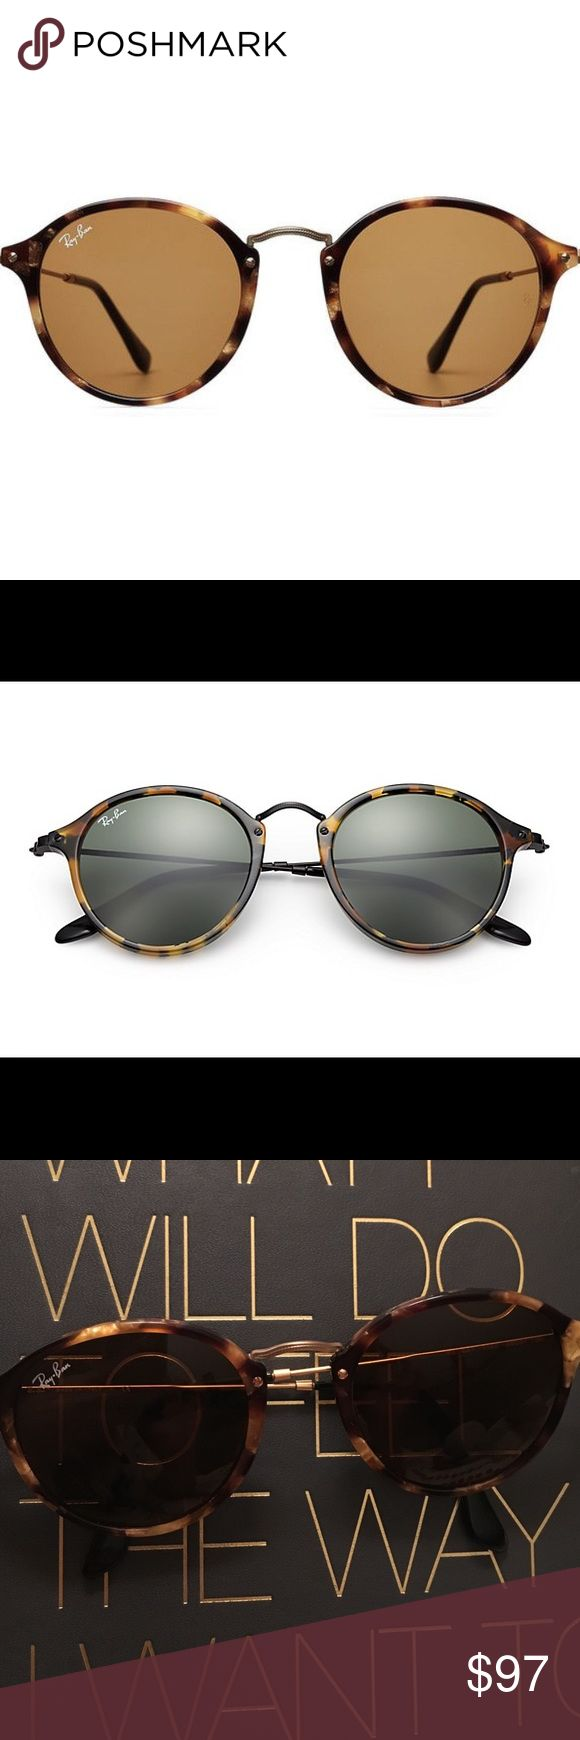 Ray-Ban Round Fleck Tortoise Women's Sunglasses 2017 Ray-Ban Round Fleck Tortoise Women's Sunglasses. Vintage look! Style number: RB2447. Comes with case. Selling these because they are too big for my frame and face. Like new :) Ray-Ban Accessories Sunglasses